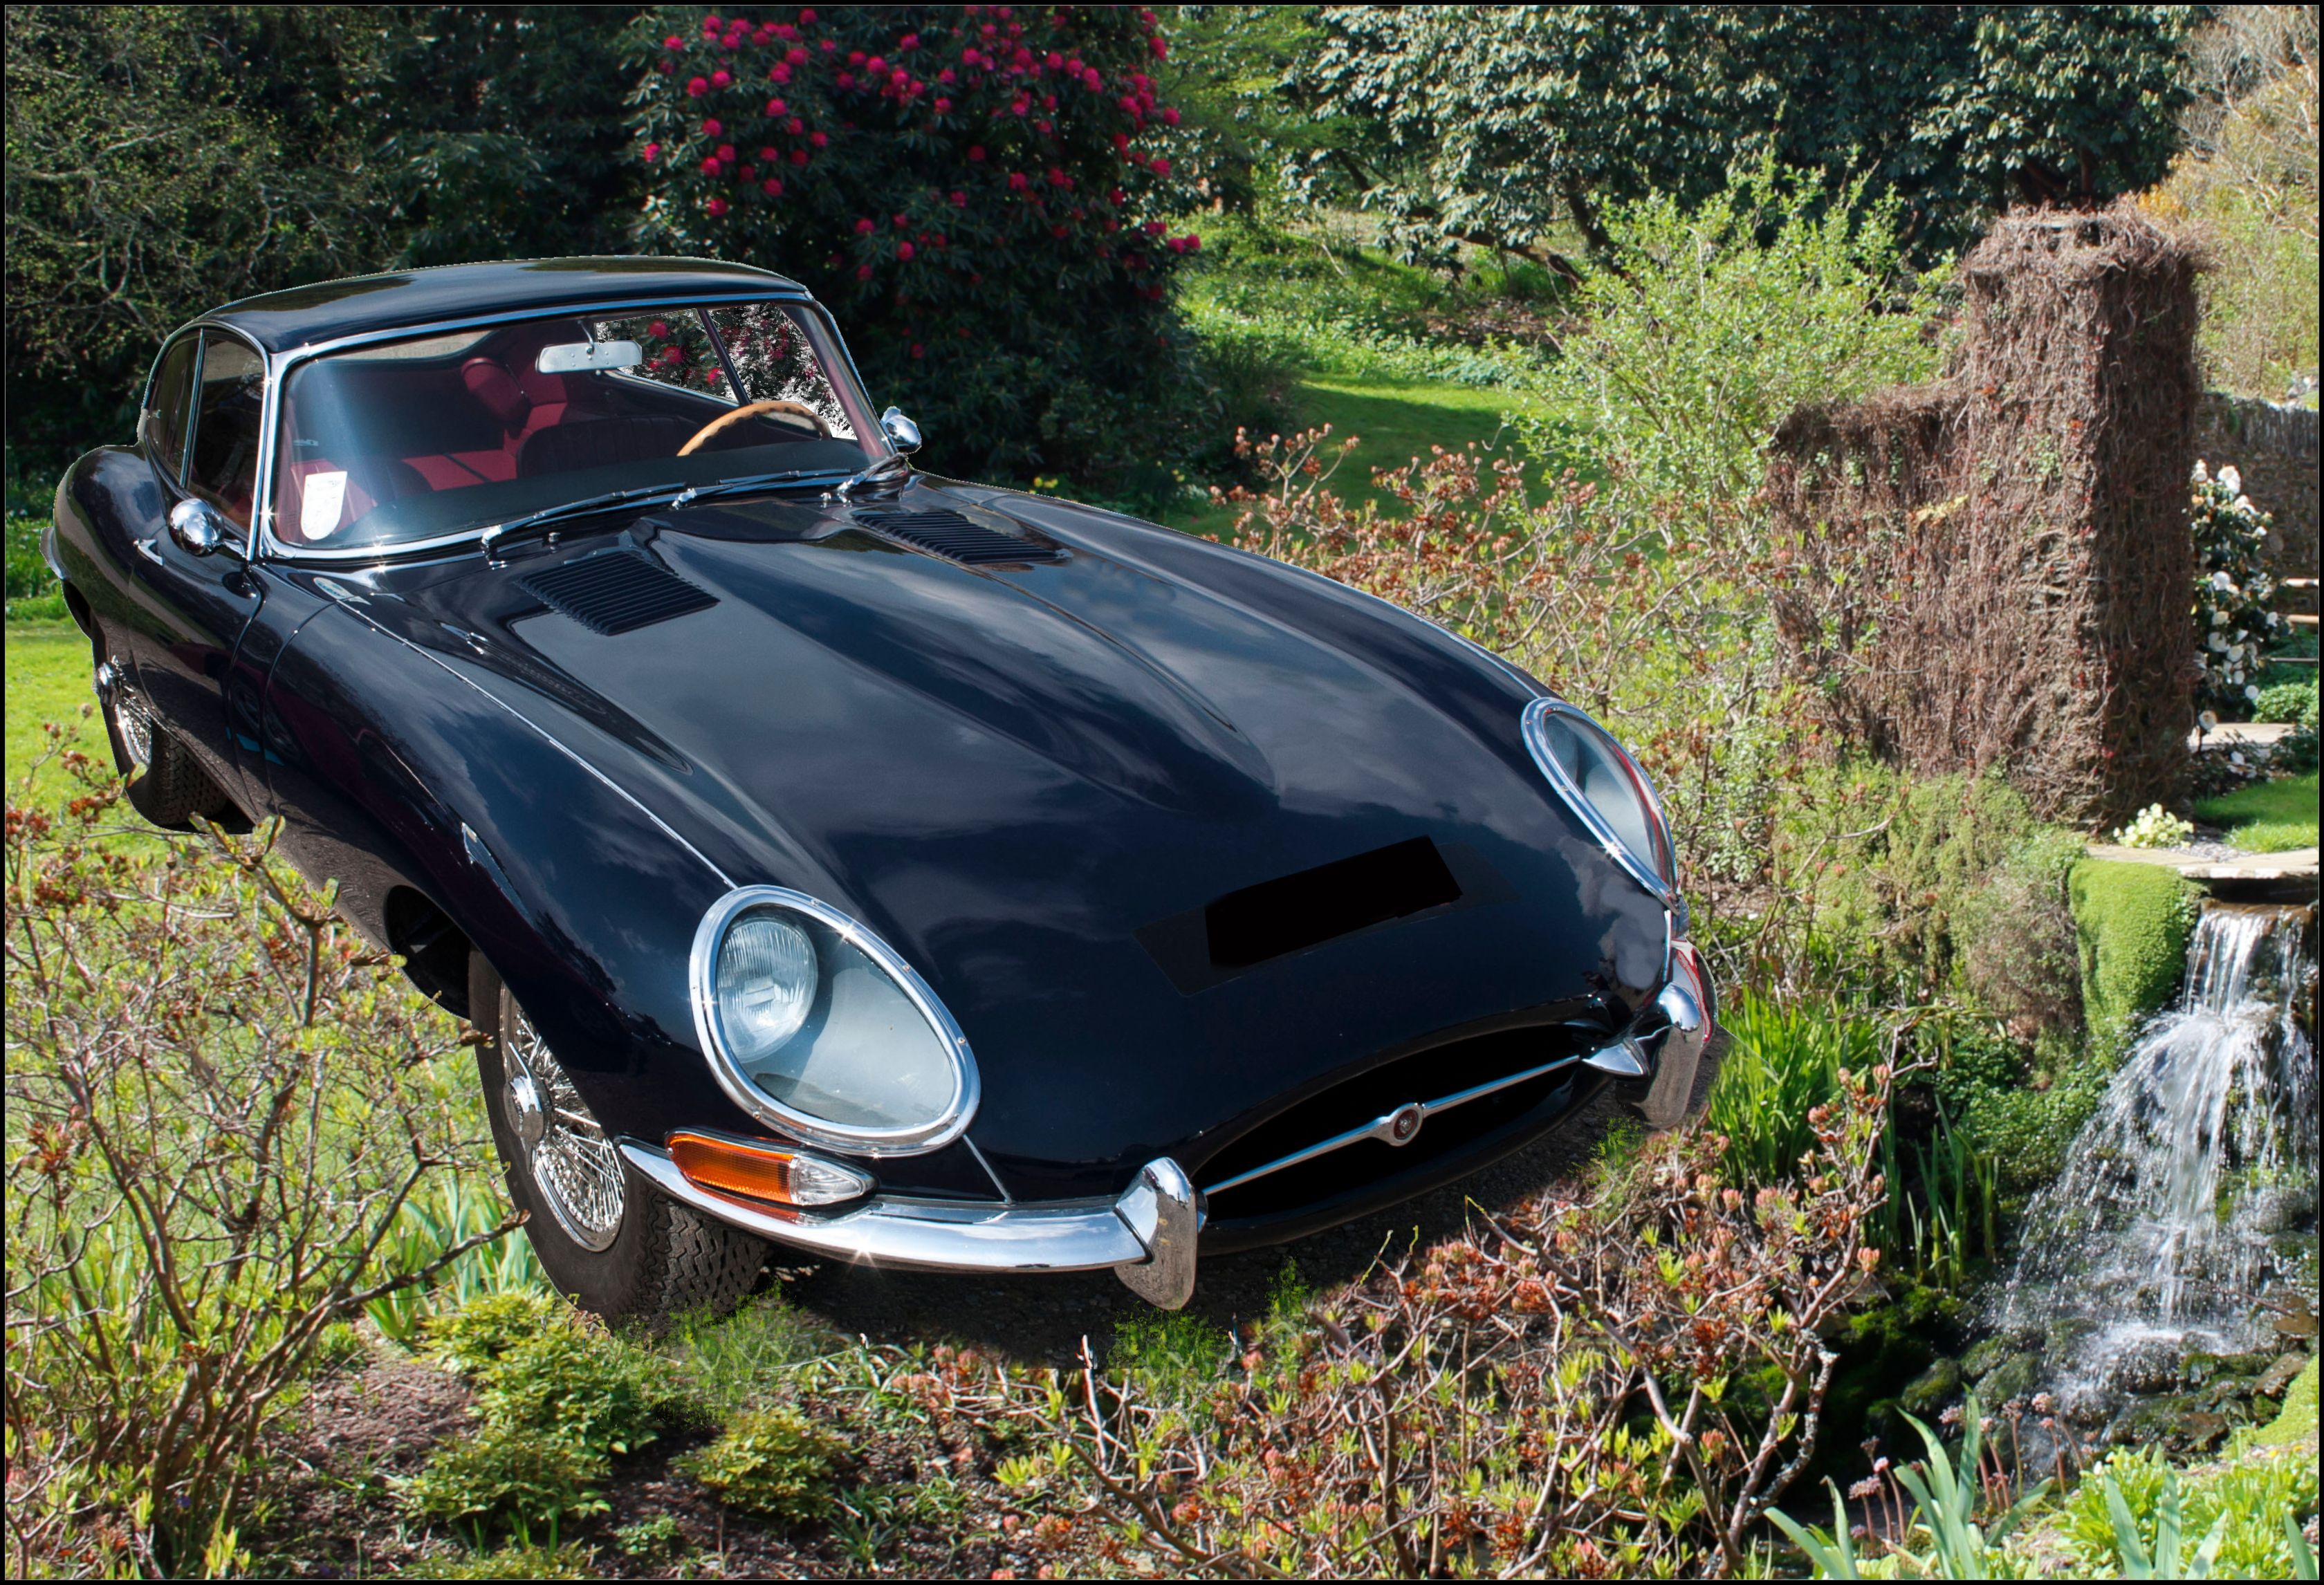 Classic E Type Jaguar from 1960s. Jaguar British Sports